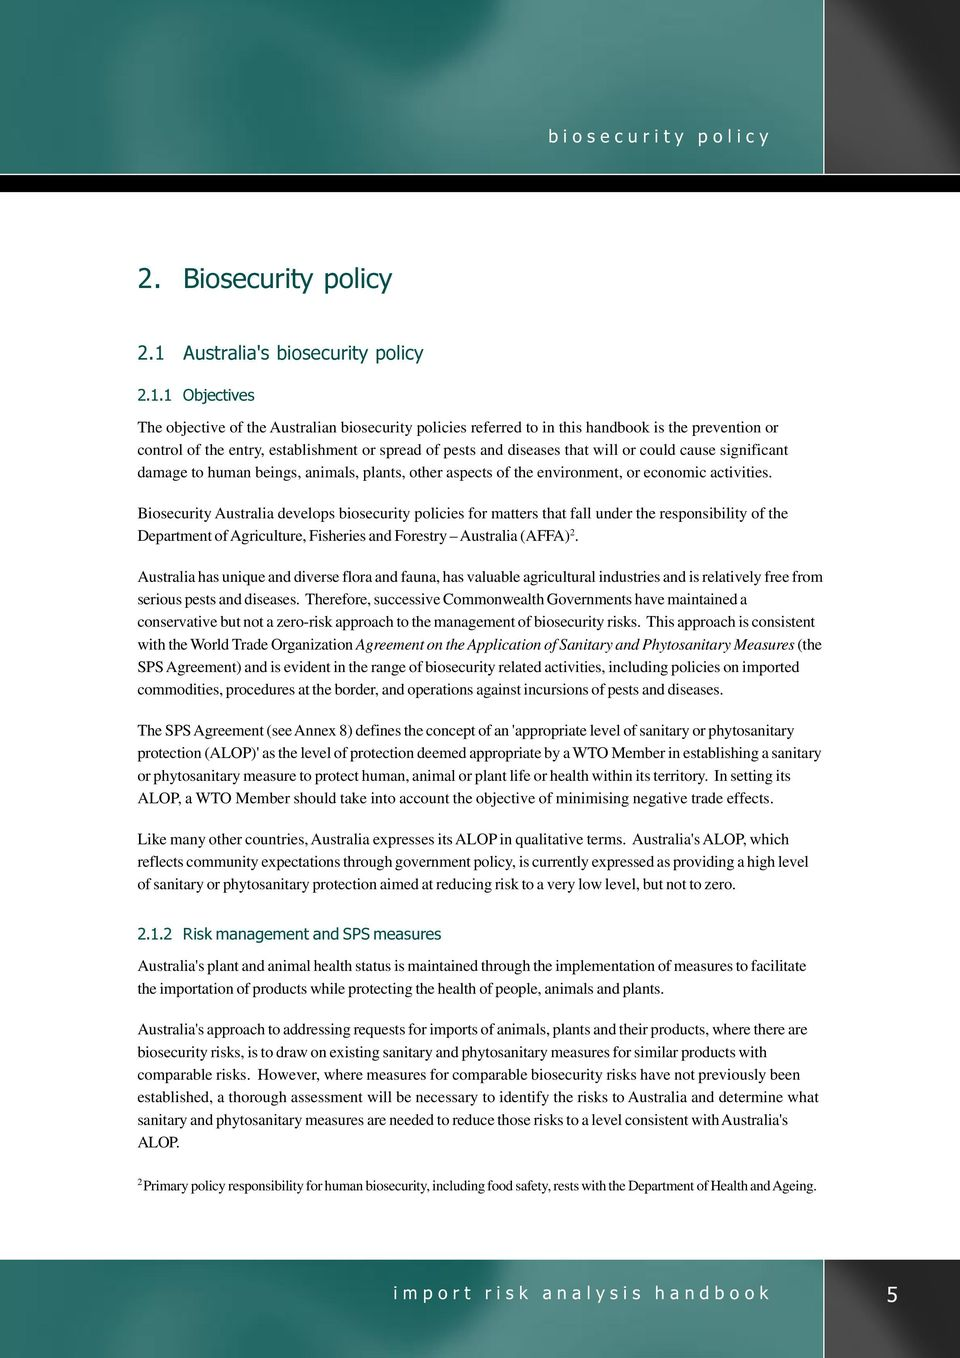 1 Objectives The objective of the Australian biosecurity policies referred to in this handbook is the prevention or control of the entry, establishment or spread of pests and diseases that will or